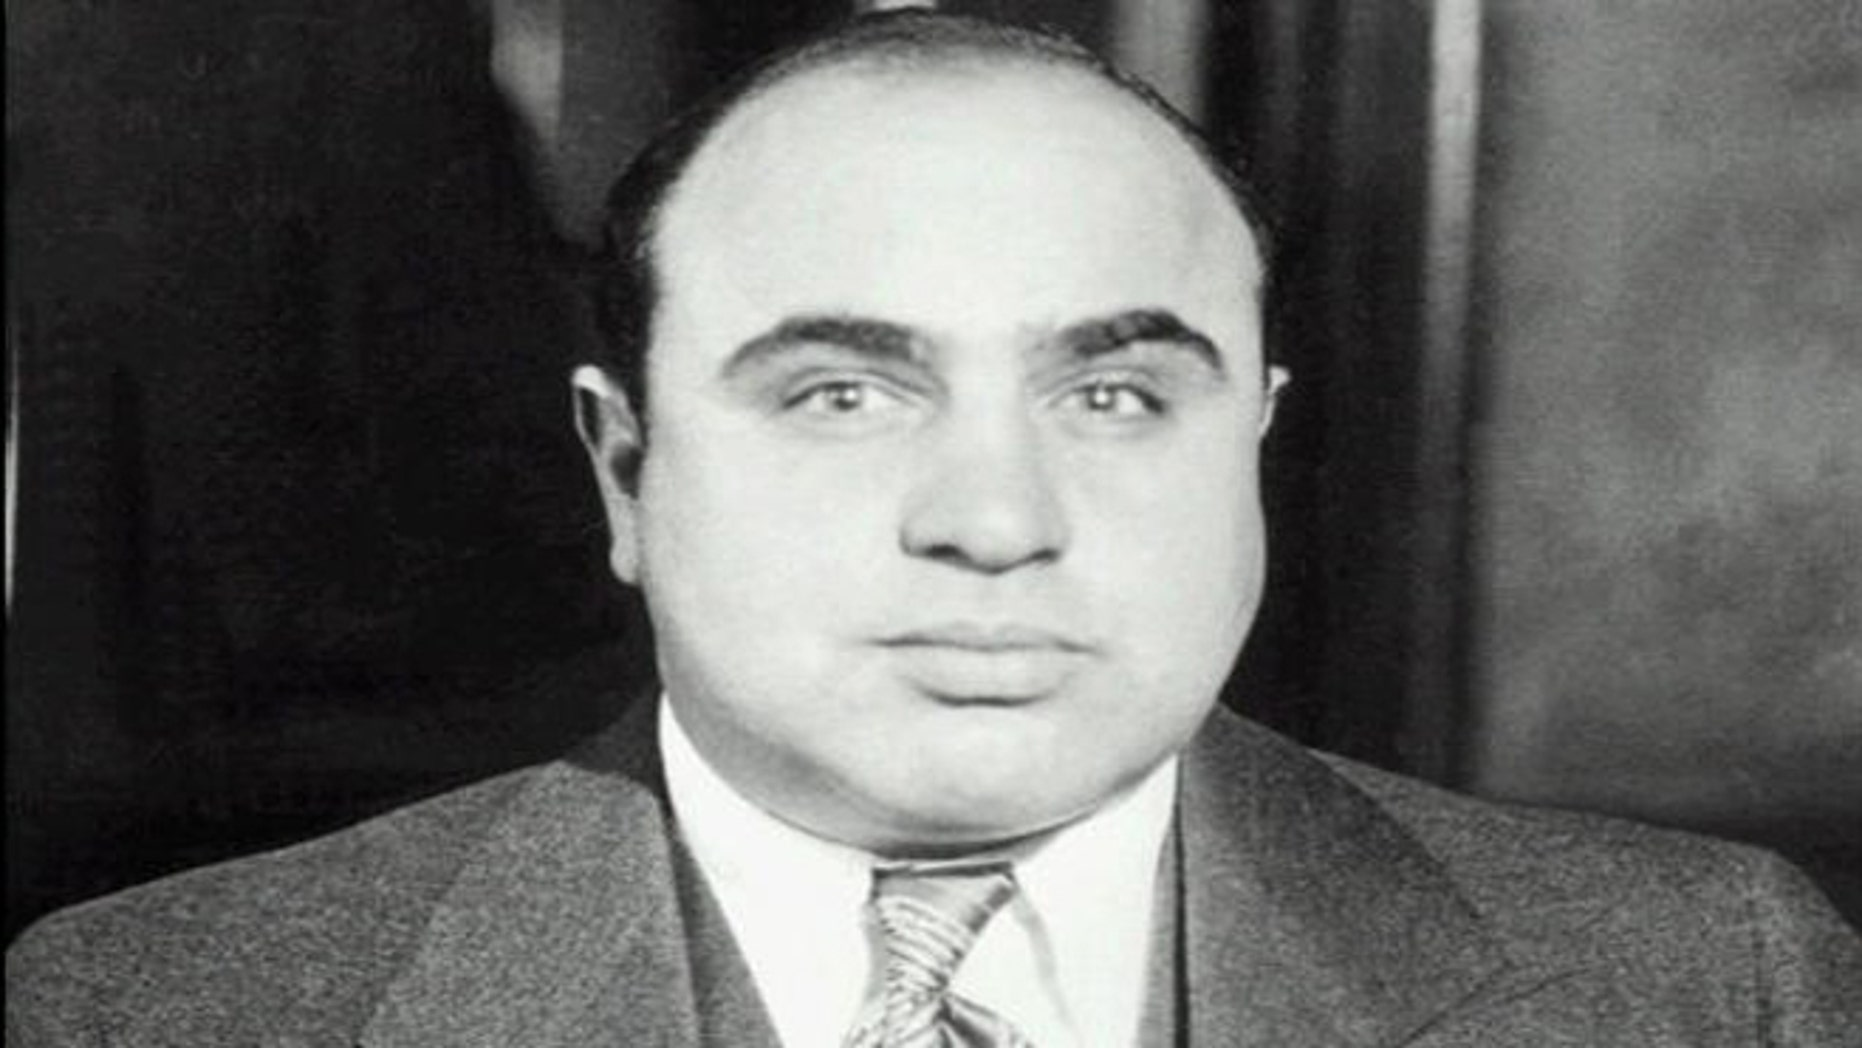 A song written by Al Capone will be auctioned off.